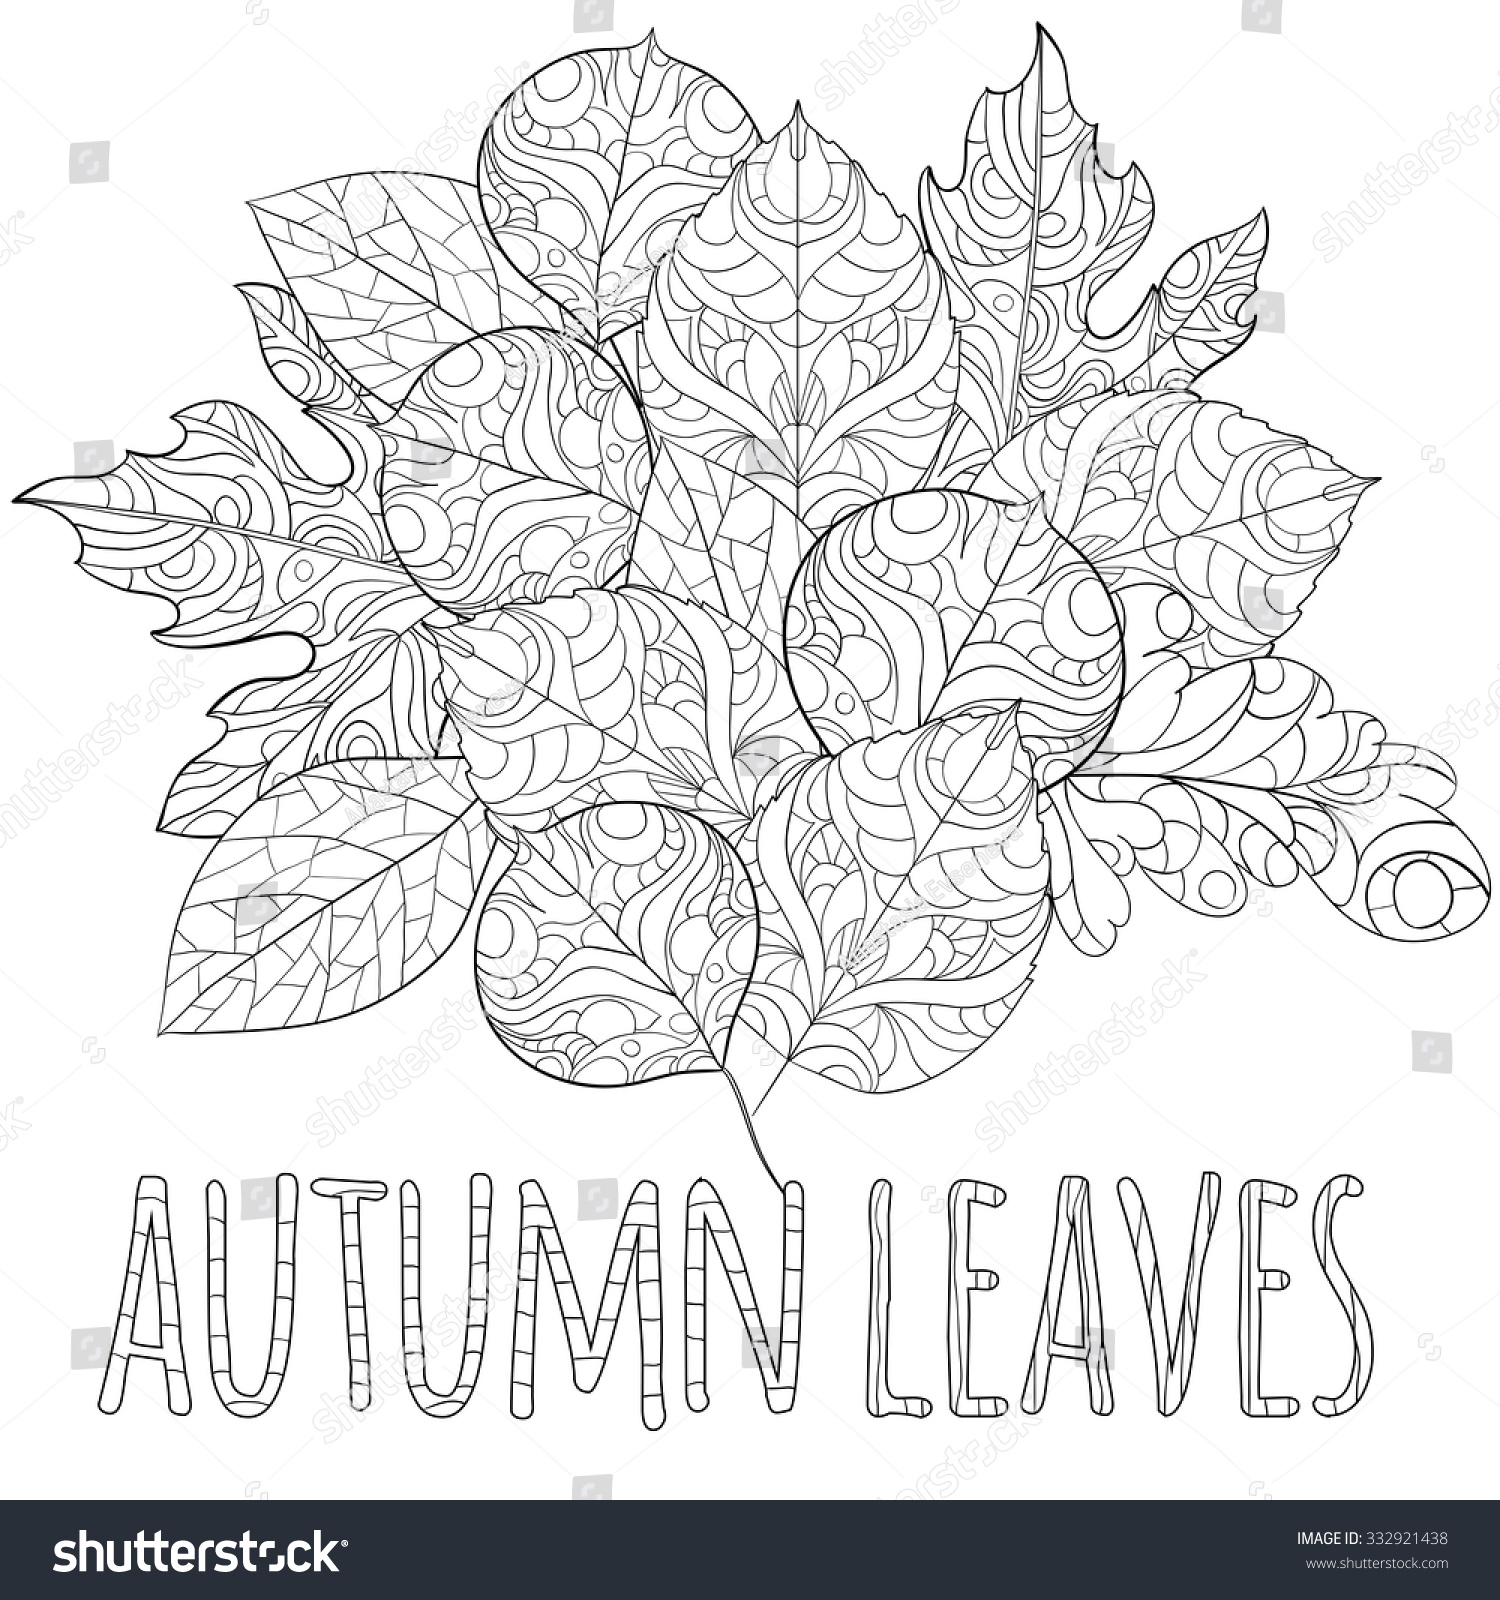 Anti stress coloring therapy - Art And Color Therapy An Anti Stress Coloring Book Circle Leaf Black Ornament